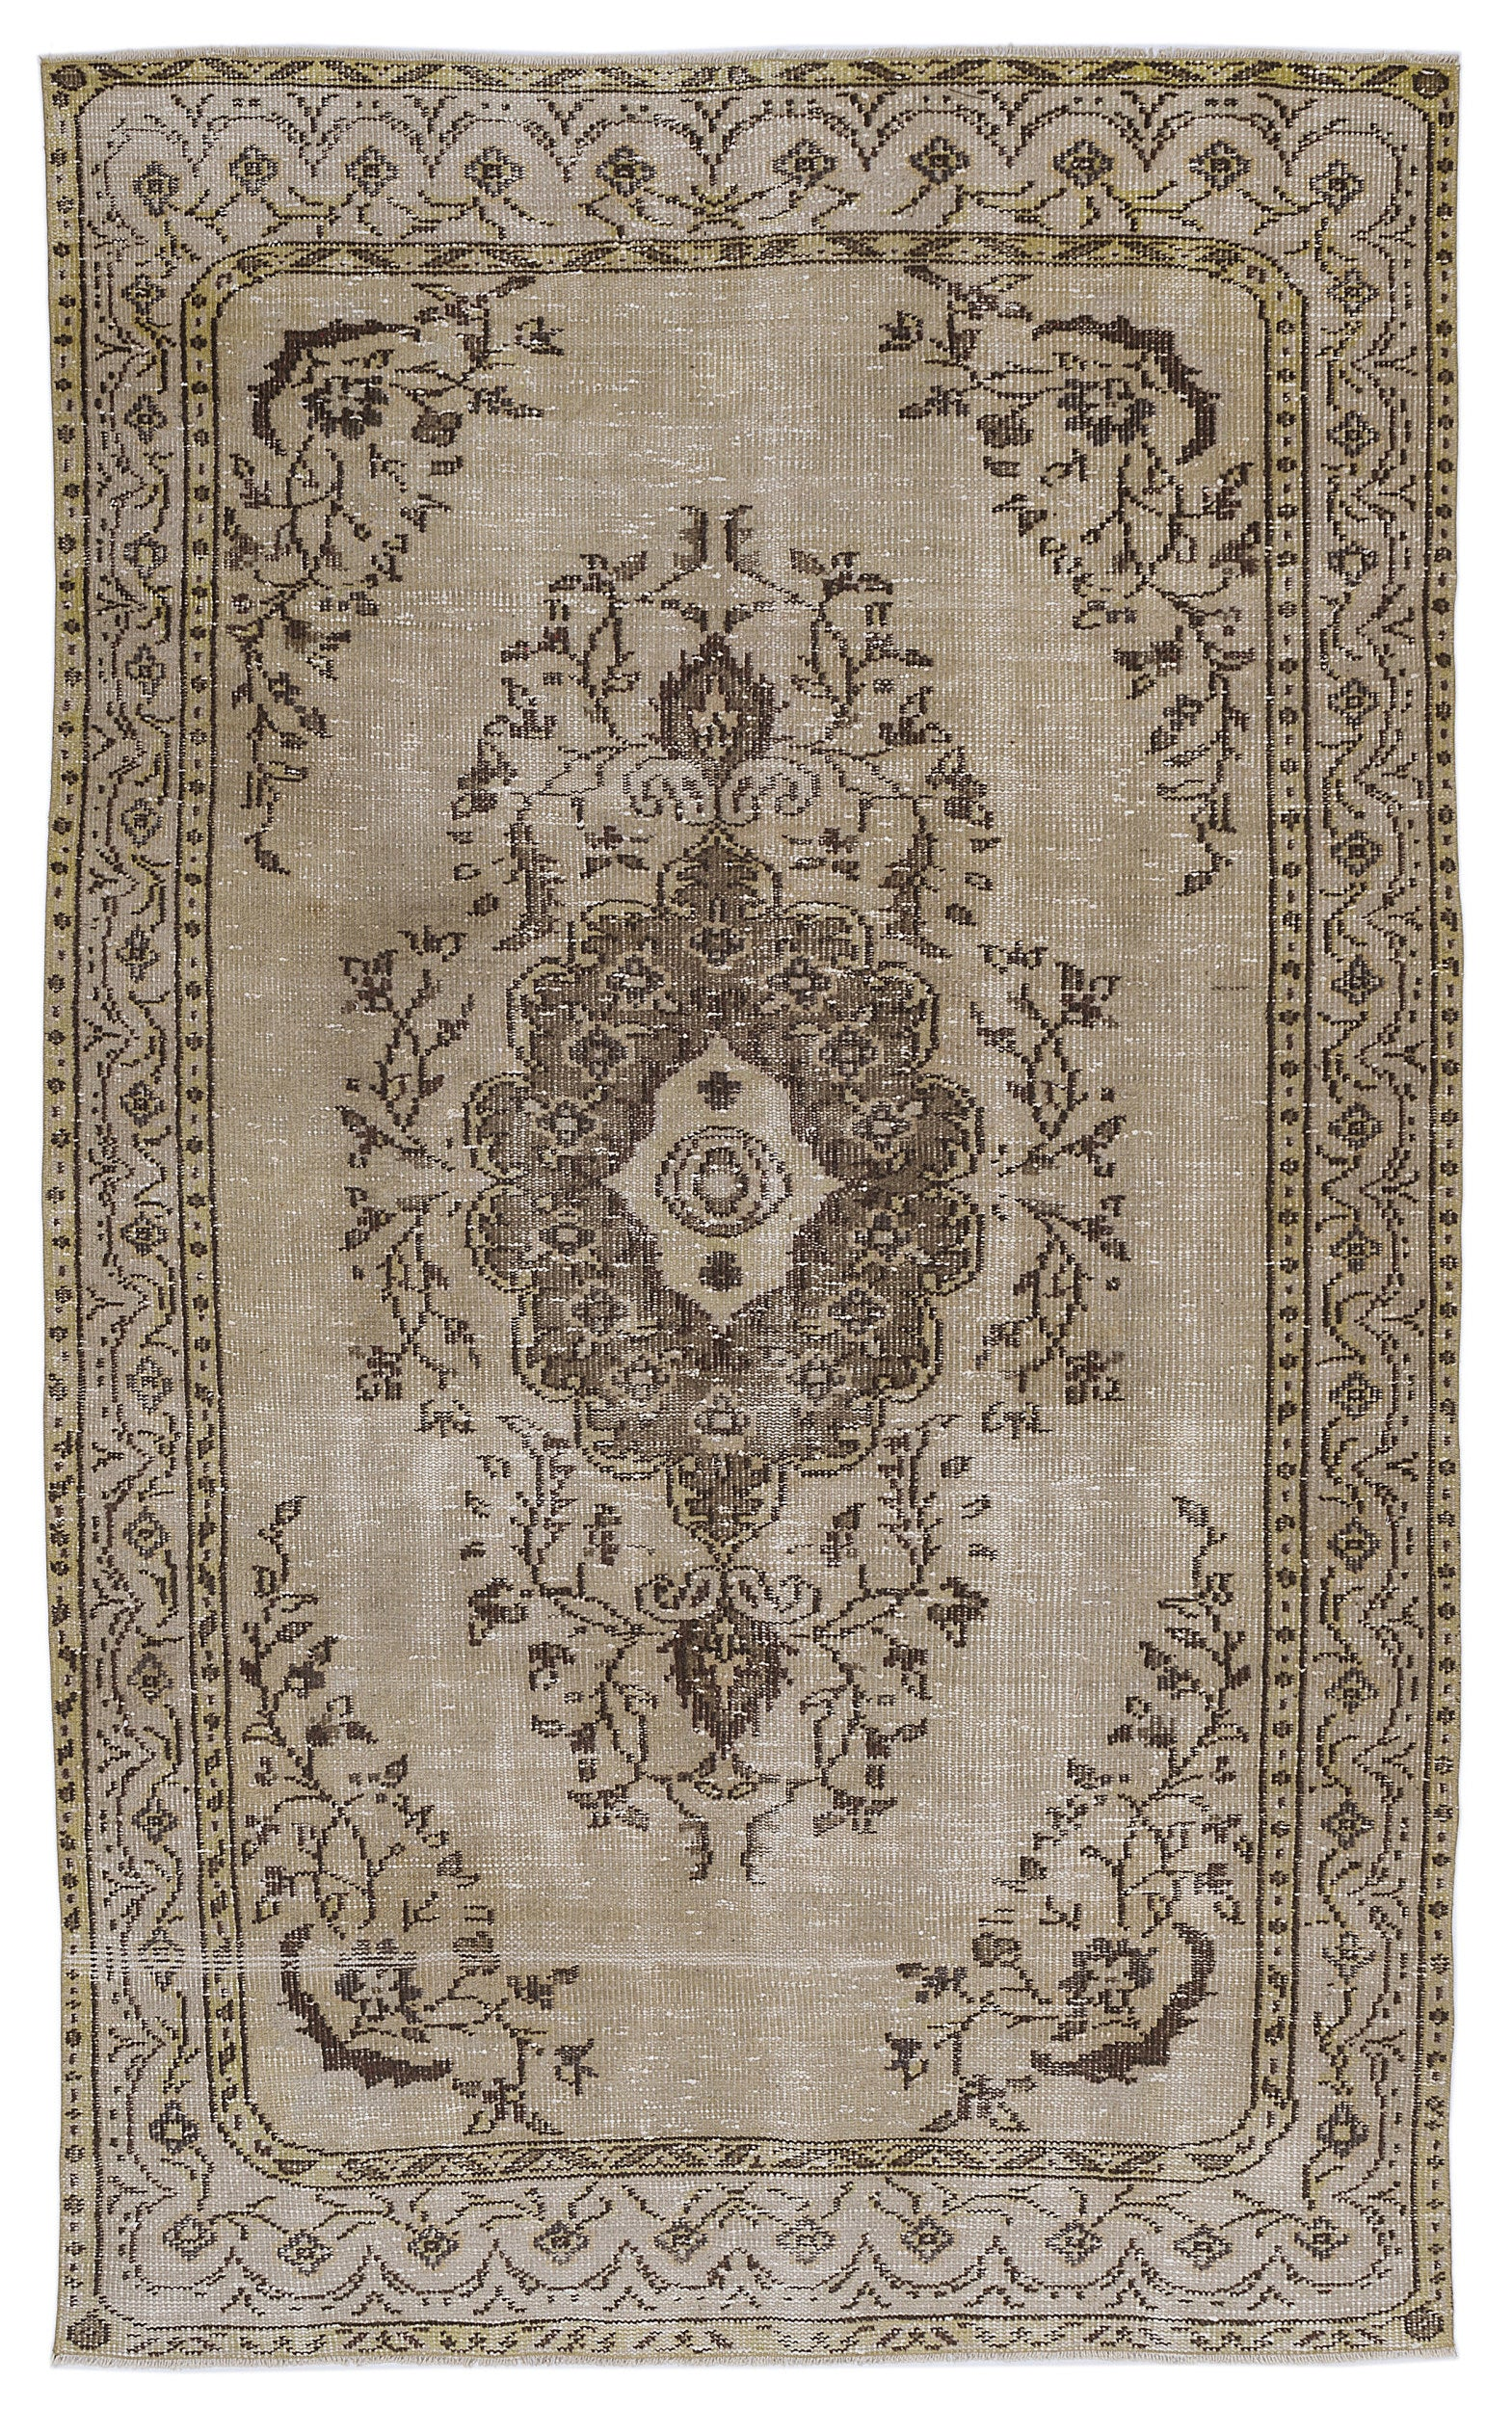 Brown Over Dyed Vintage Rug 5'5'' x 8'12'' ft 165 x 274 cm